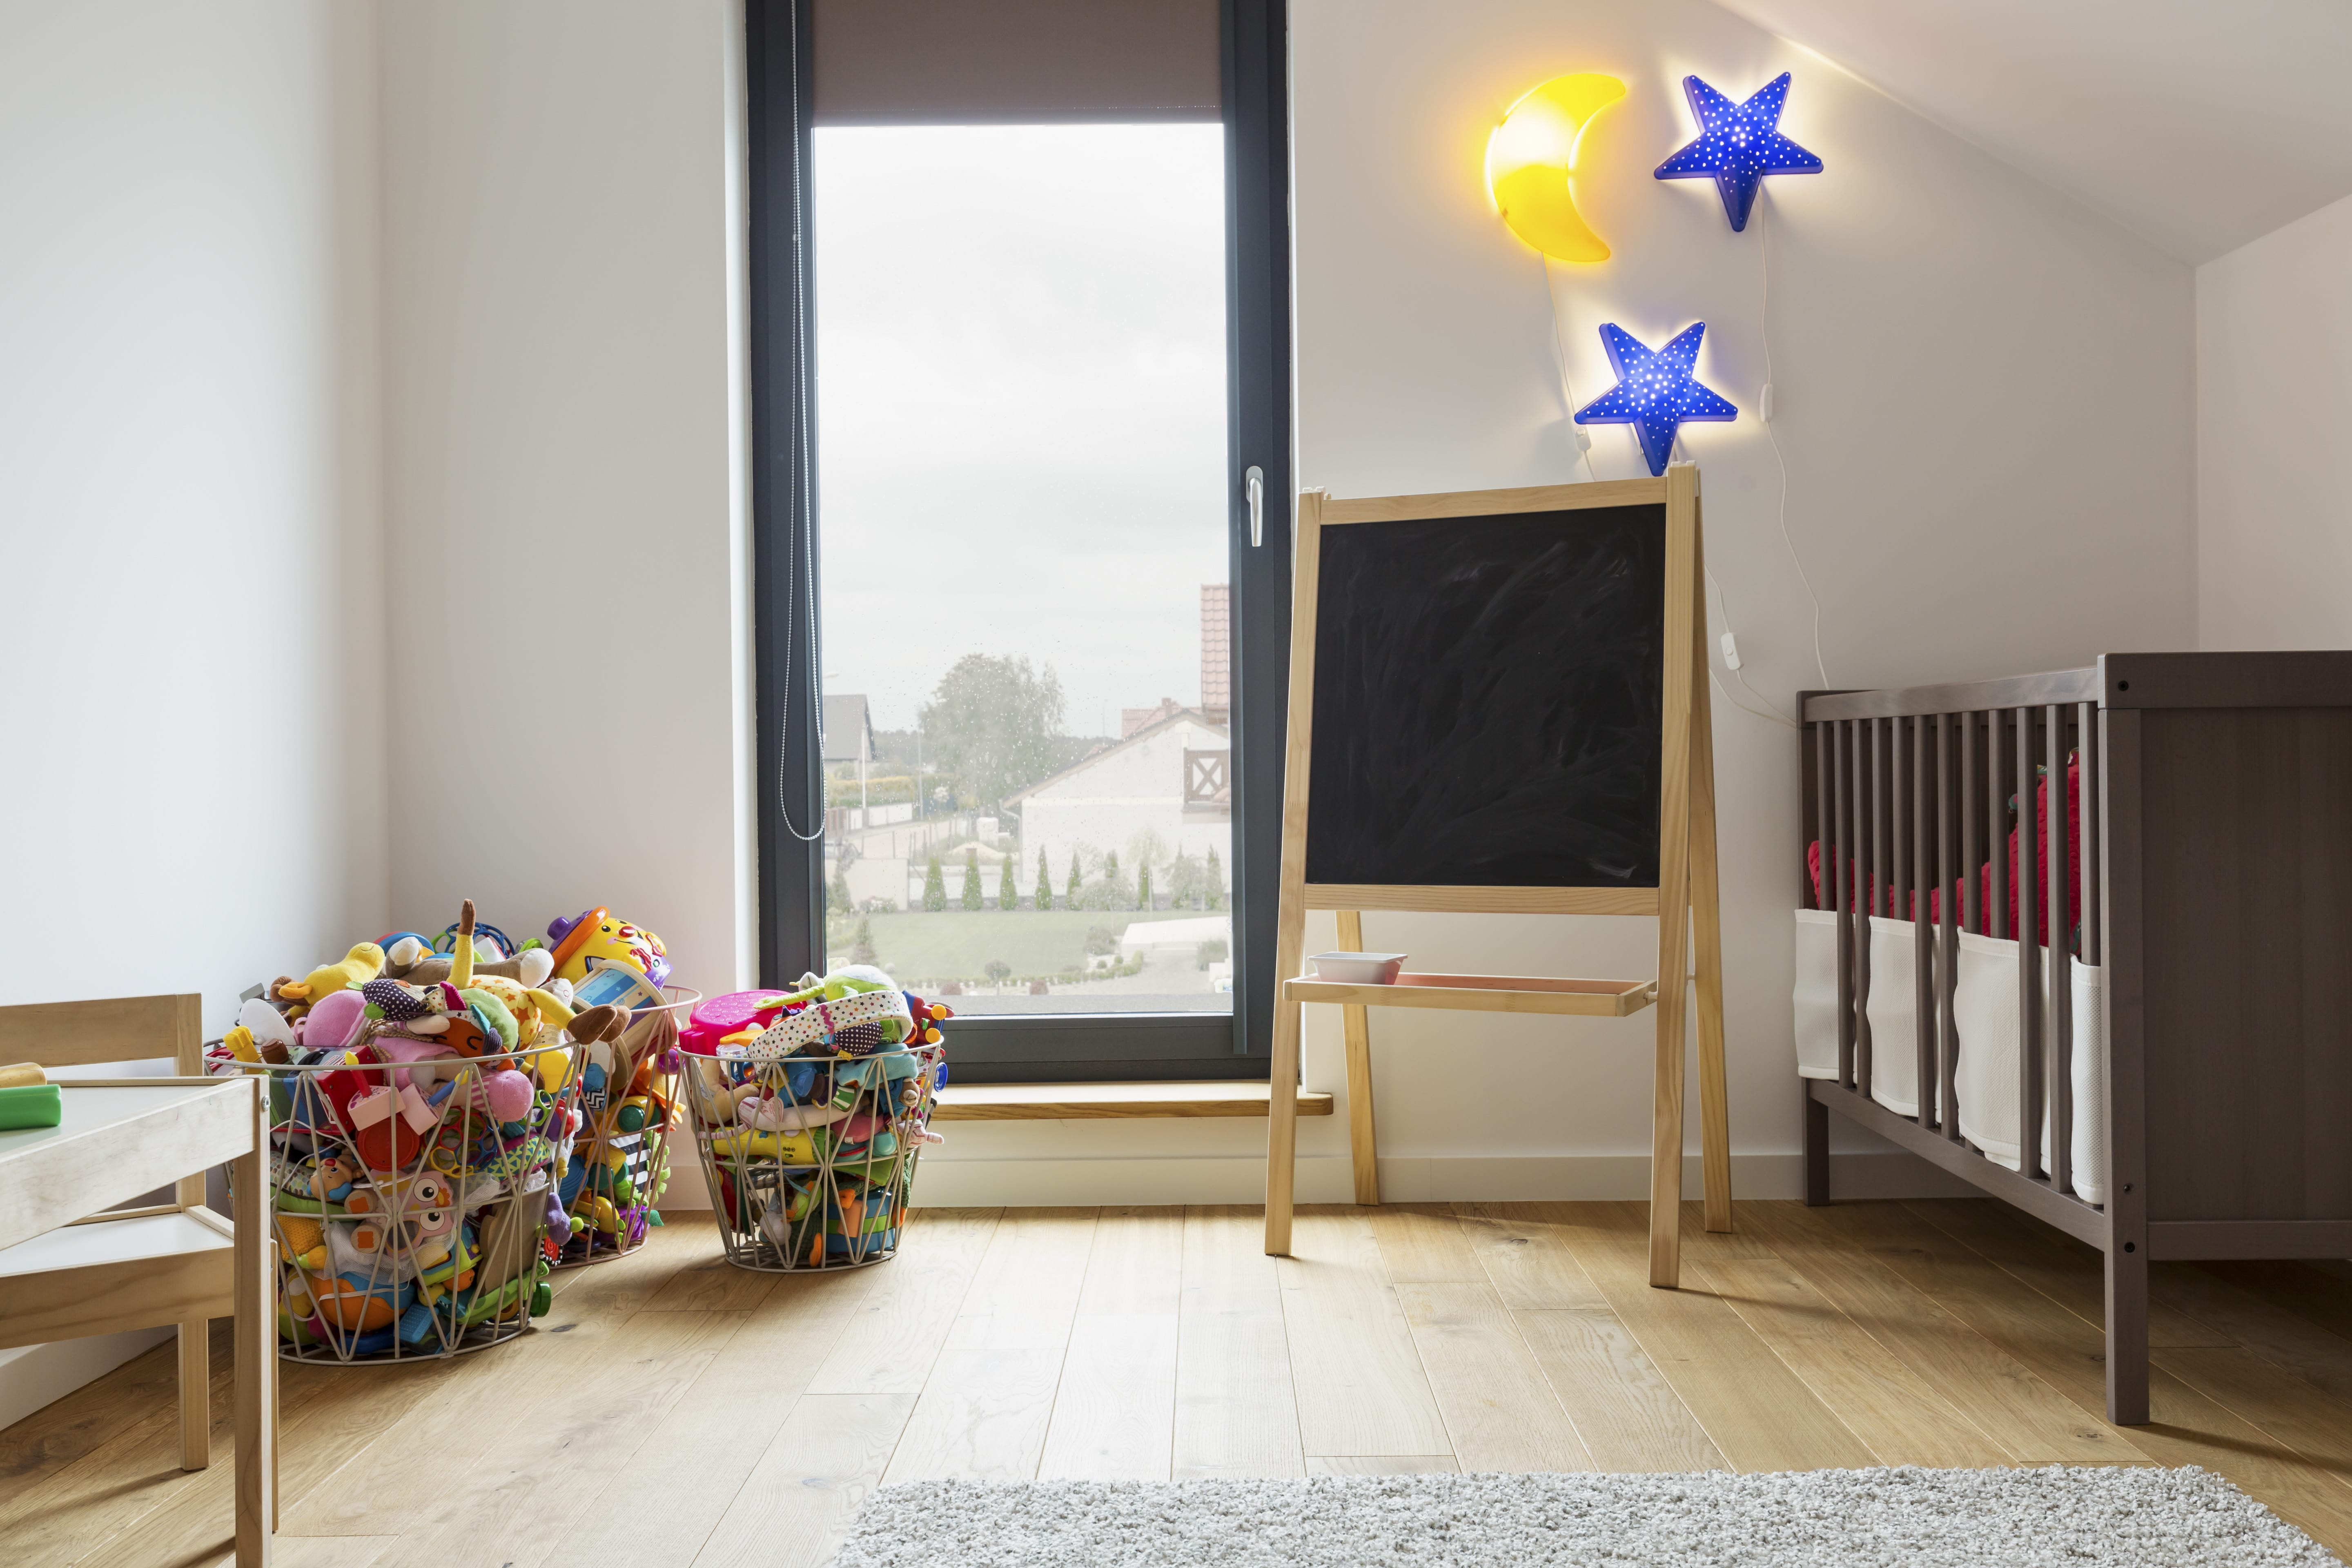 cozy-room-for-a-child-PRD7DDJ-min